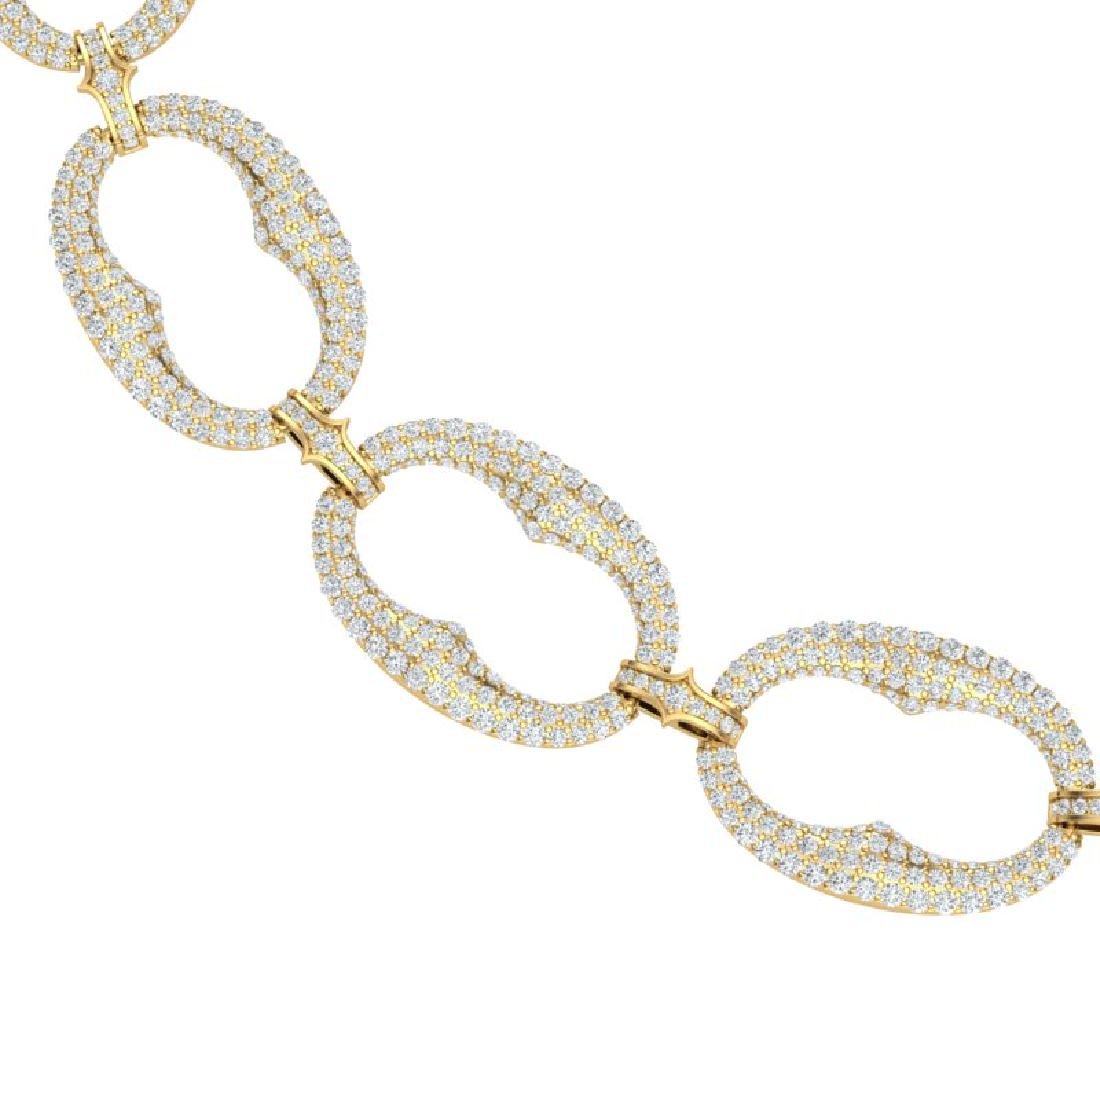 32 CTW Certified VS/SI Diamond Necklace 18K Yellow Gold